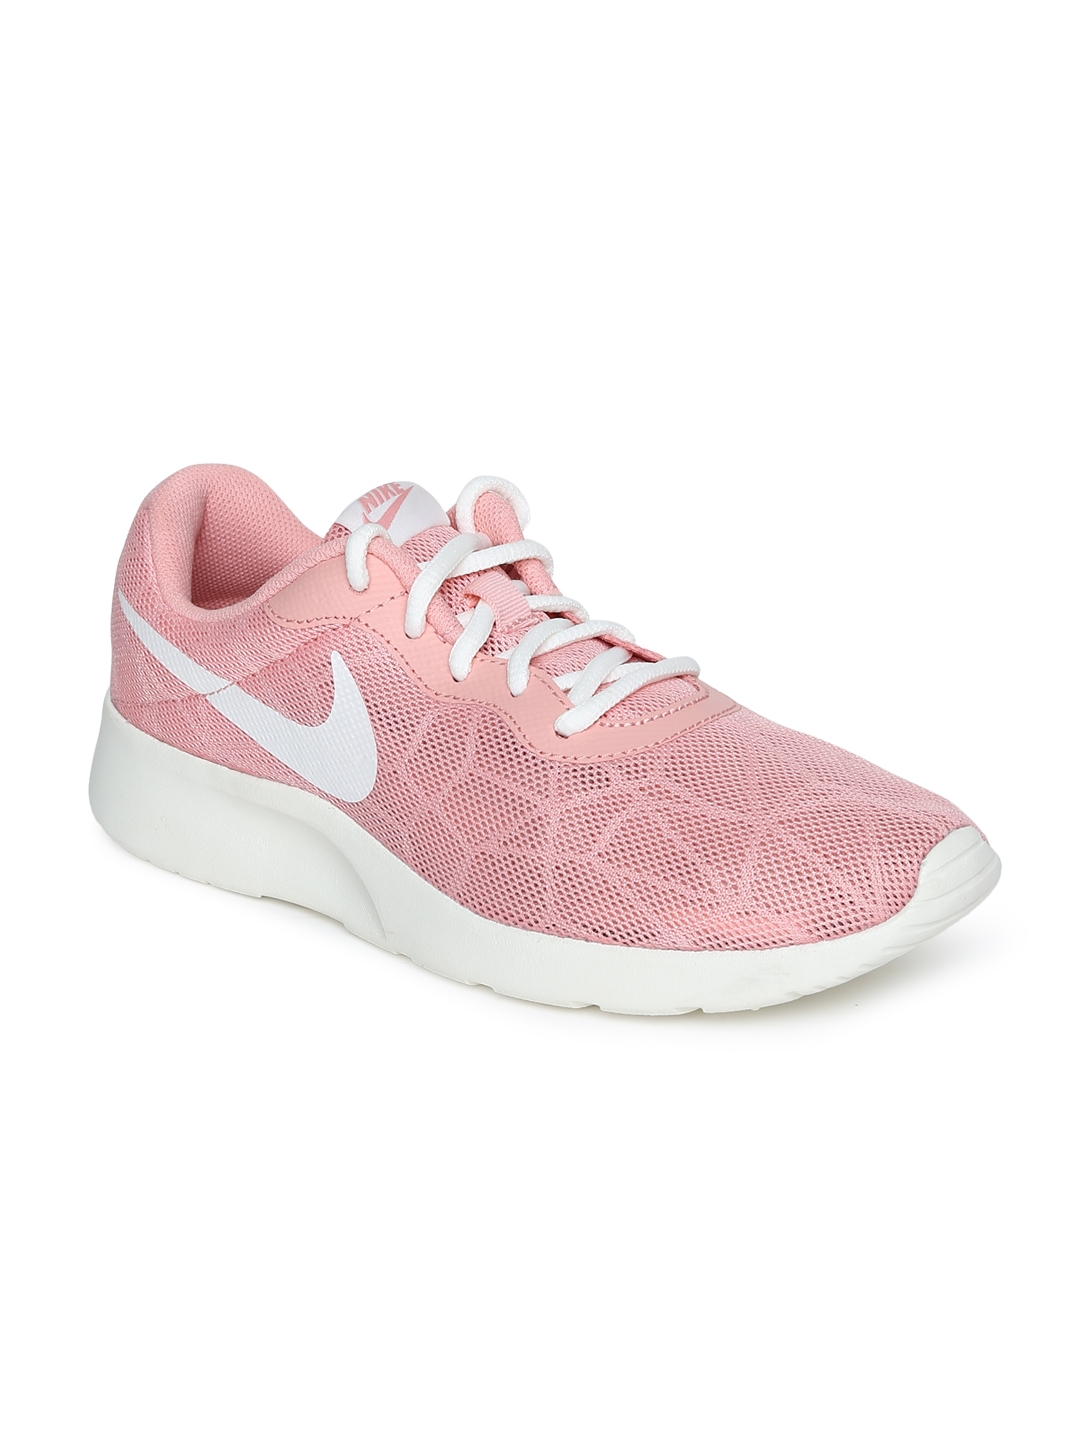 02194c185118c9 Buy Nike Women Pink Tanjun SE Sneakers - Casual Shoes for Women ...